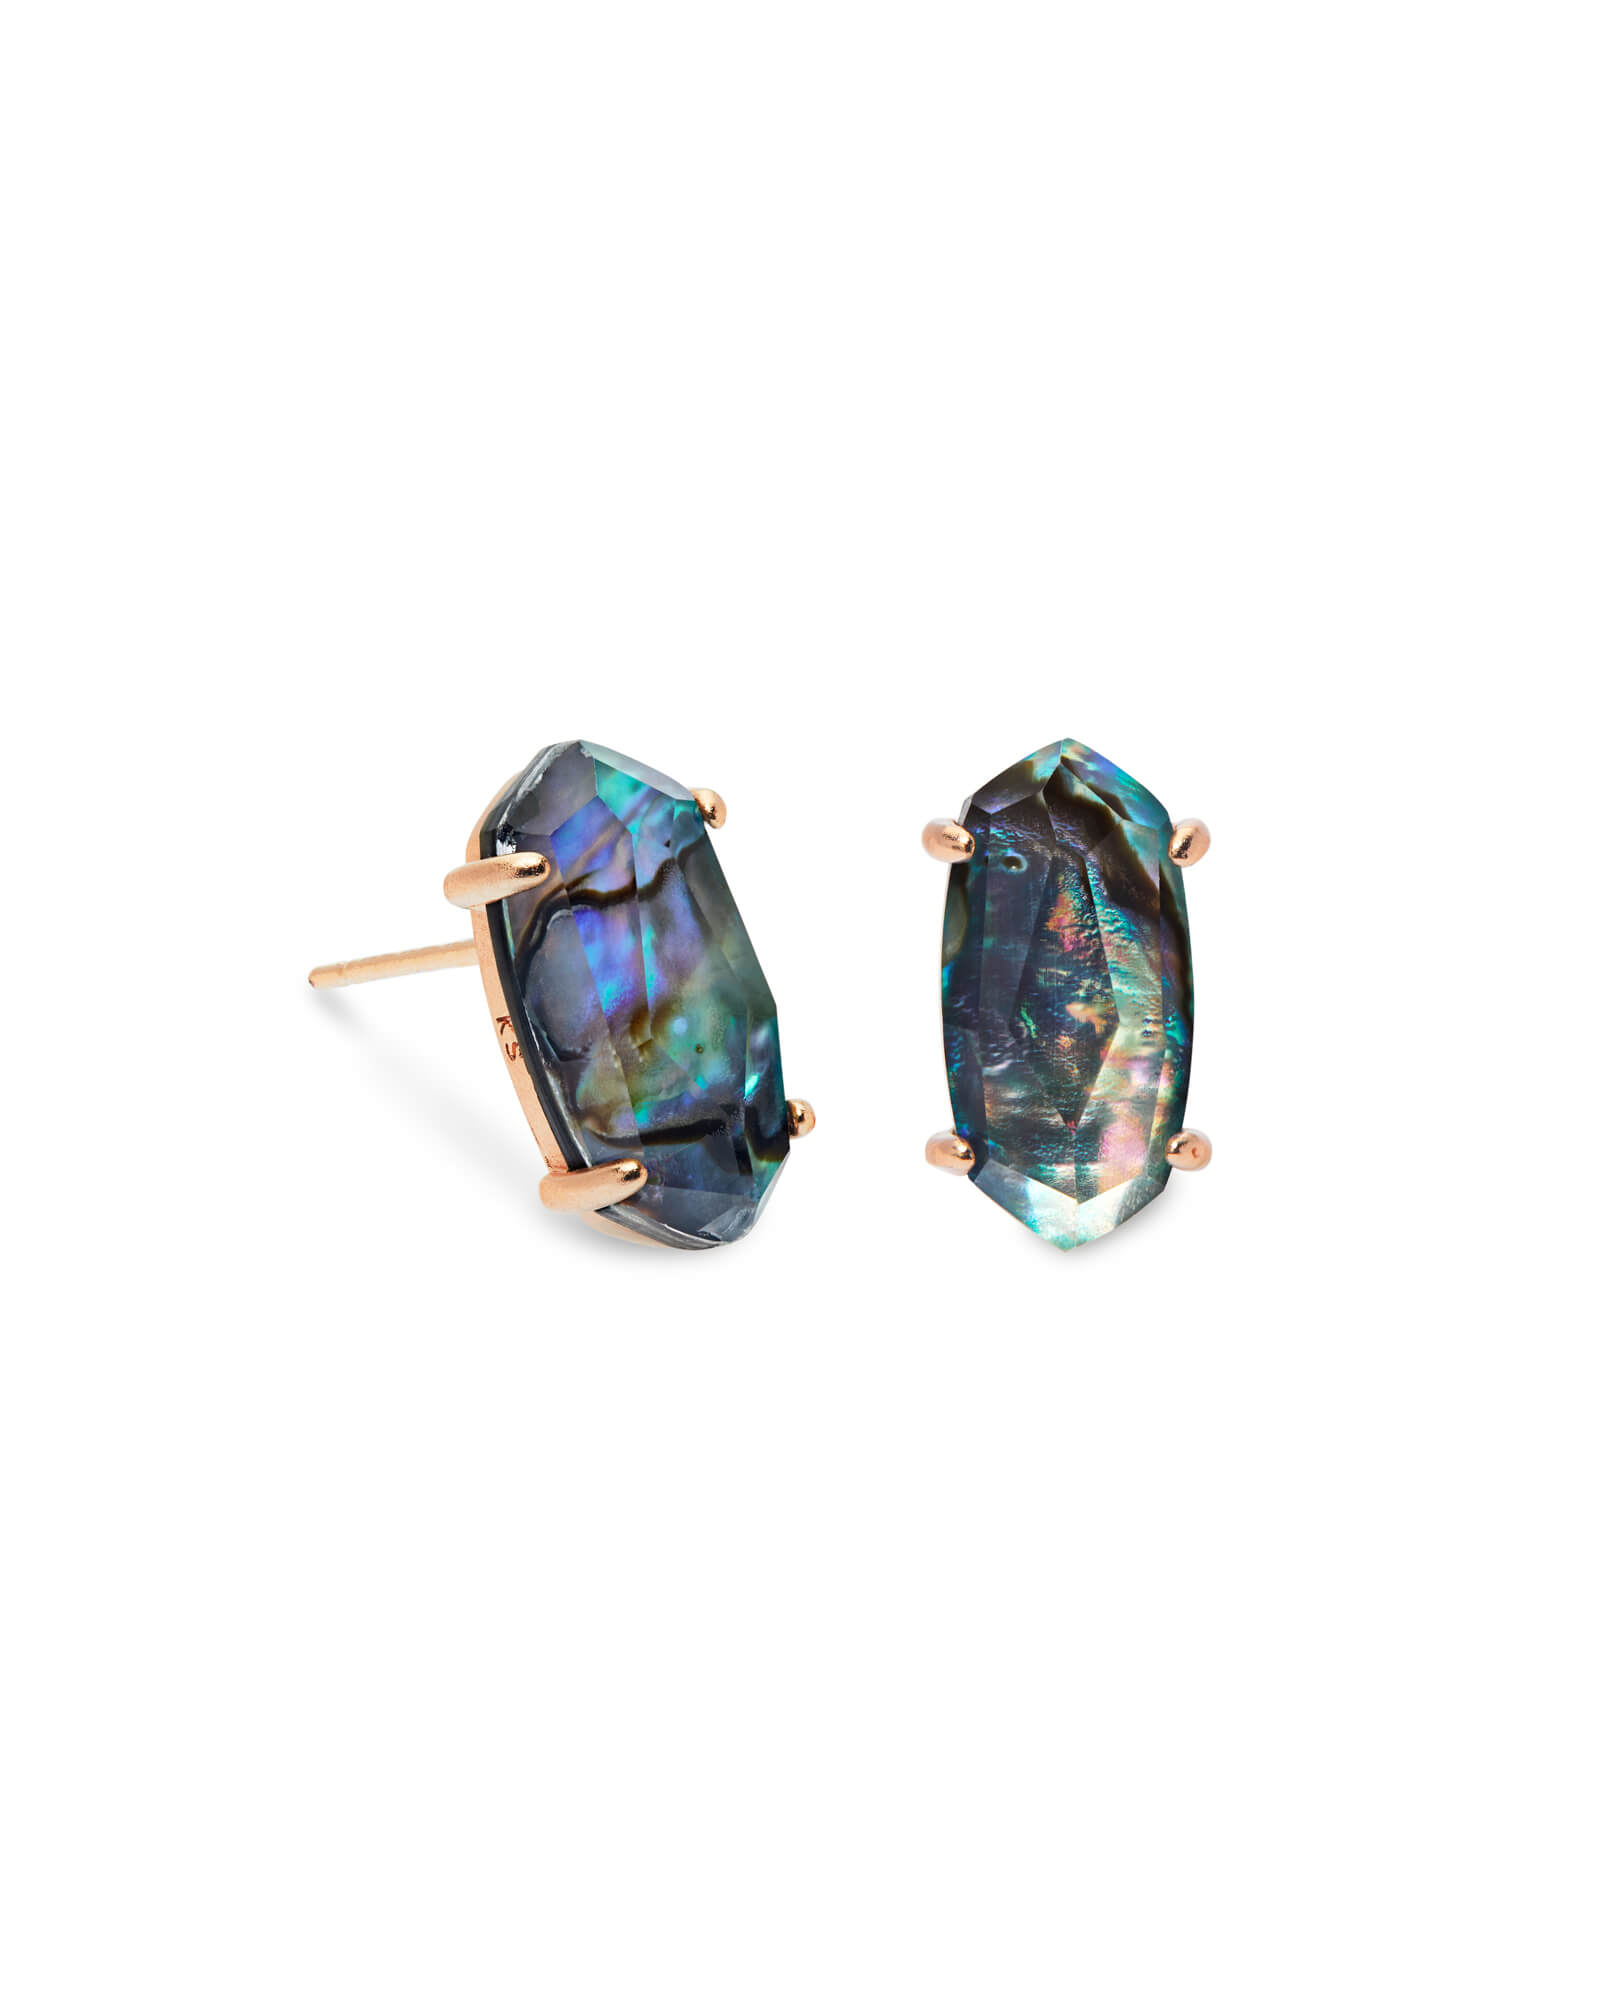 Betty Rose Gold Stud Earrings in Abalone Shell